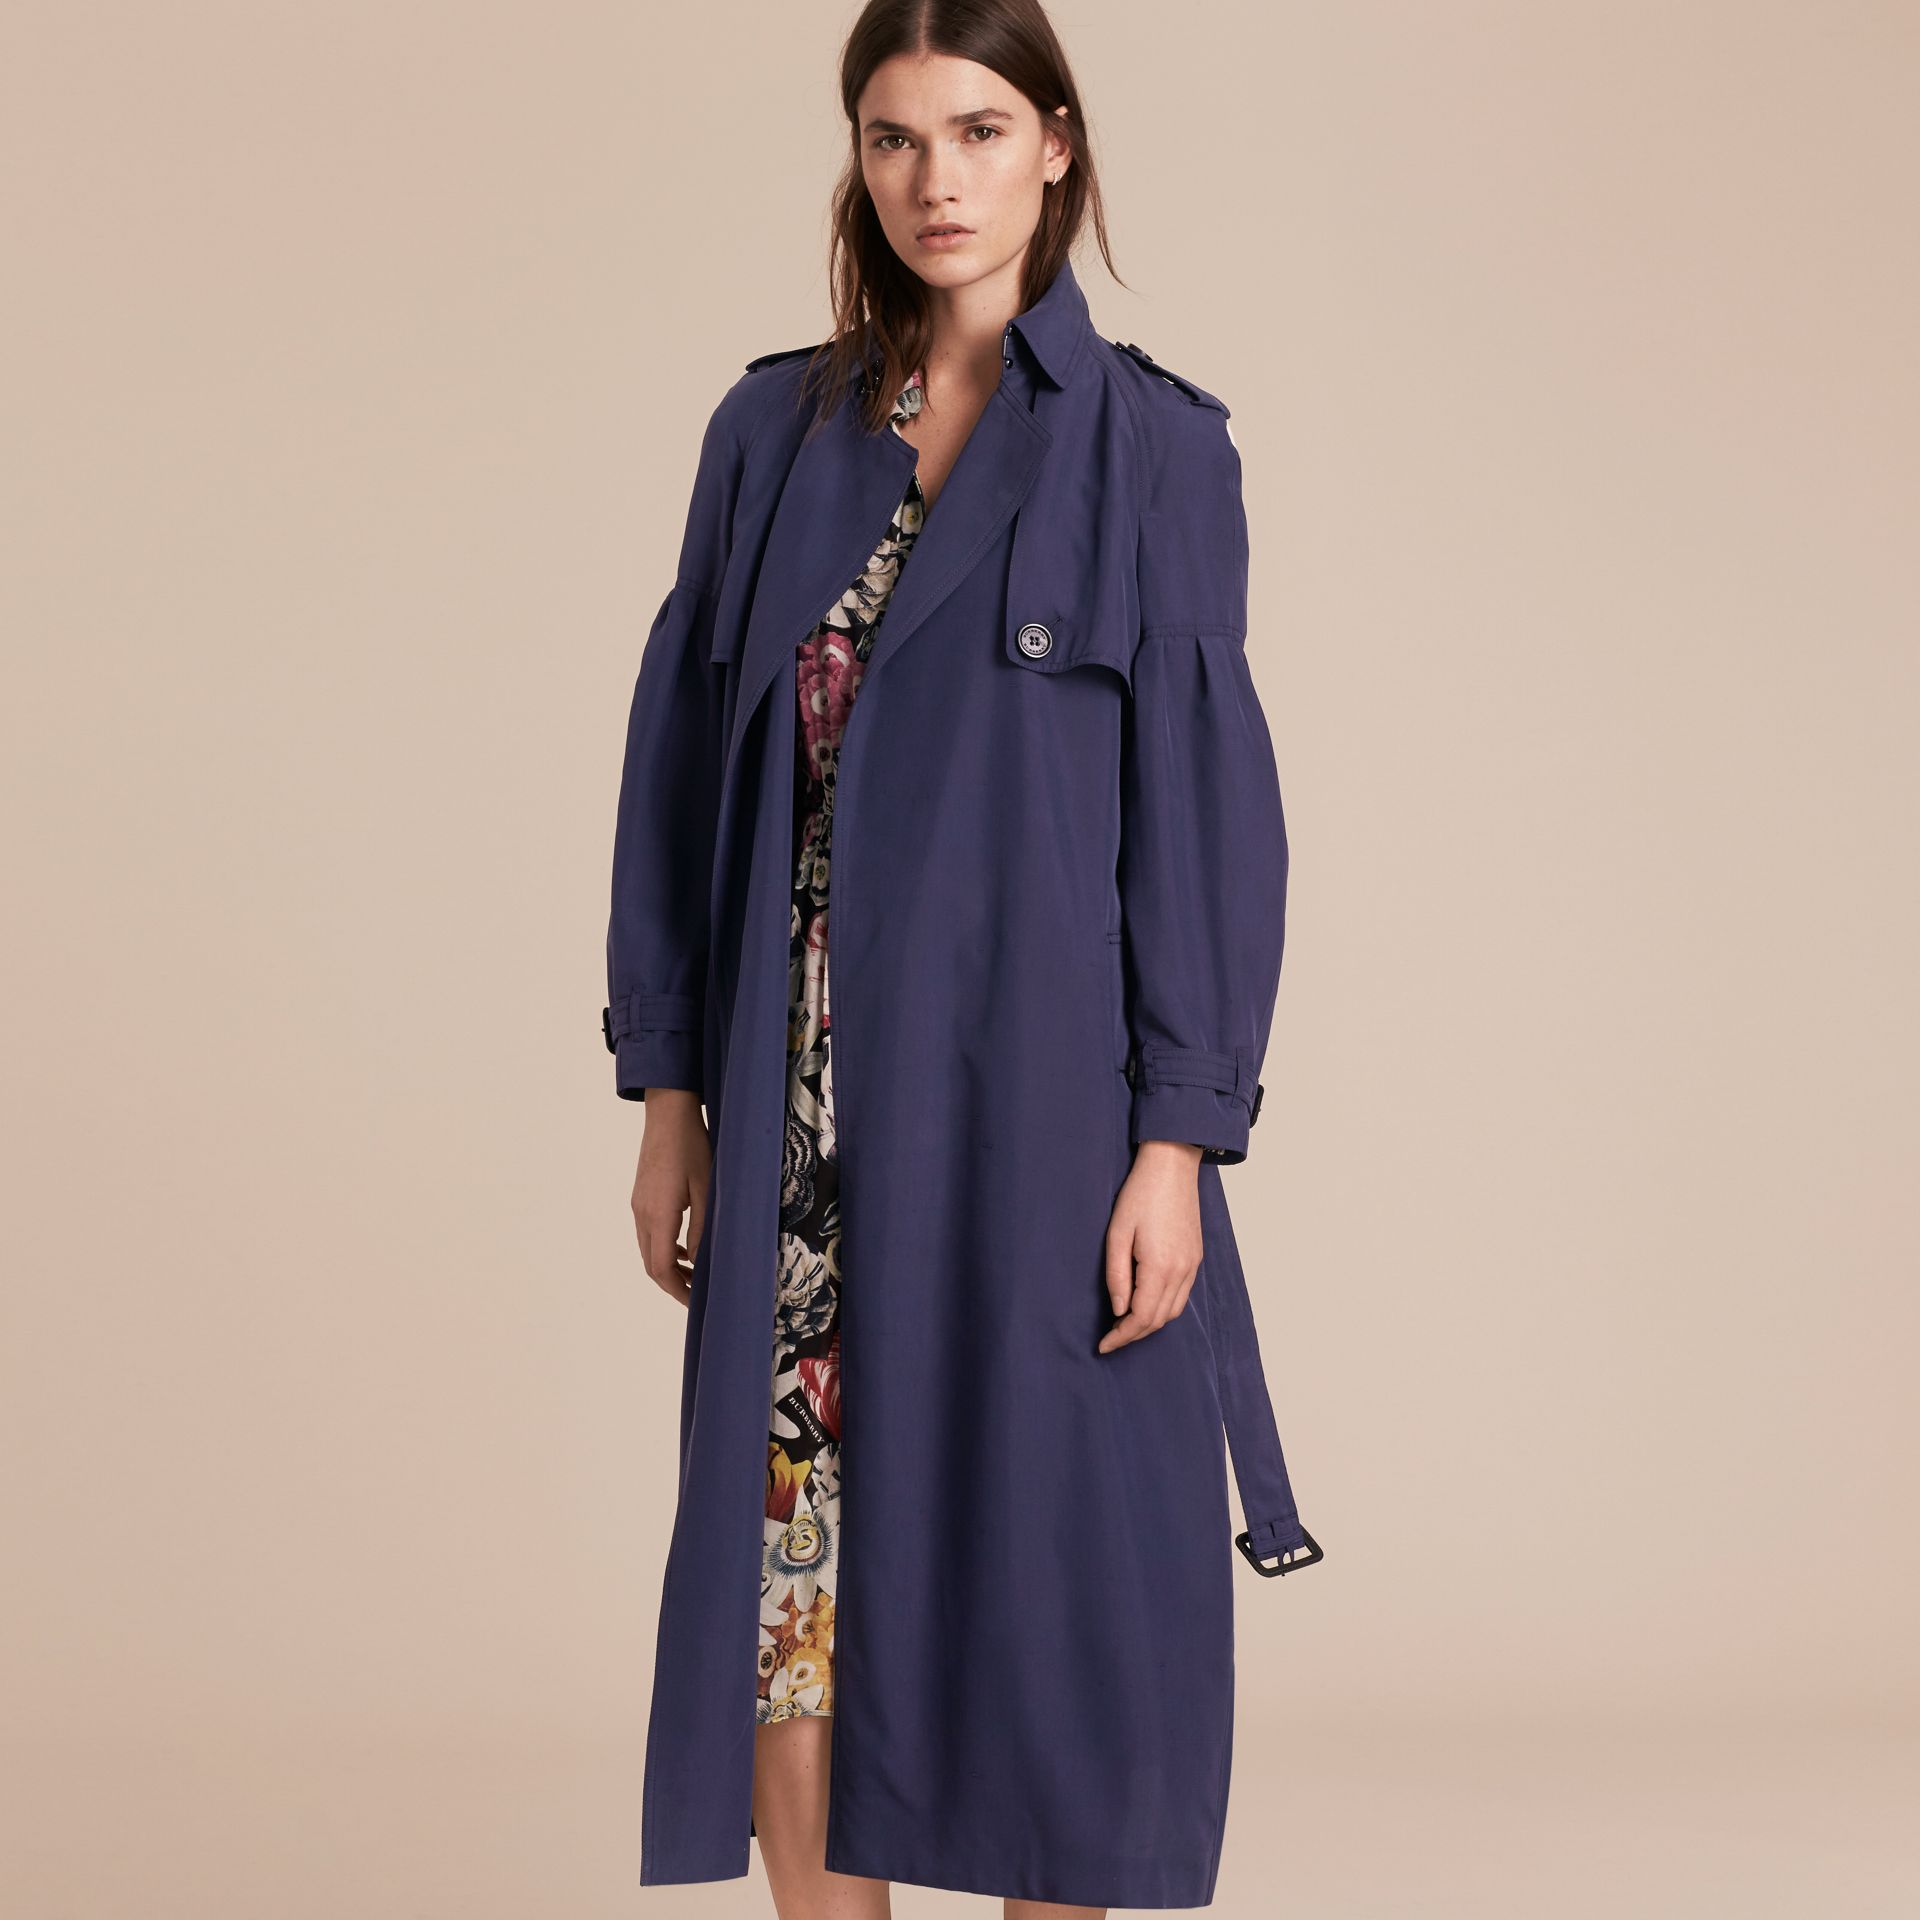 Oversize Silk Trench Coat with Puff Sleeves in Navy - Women | Burberry - gallery image 6